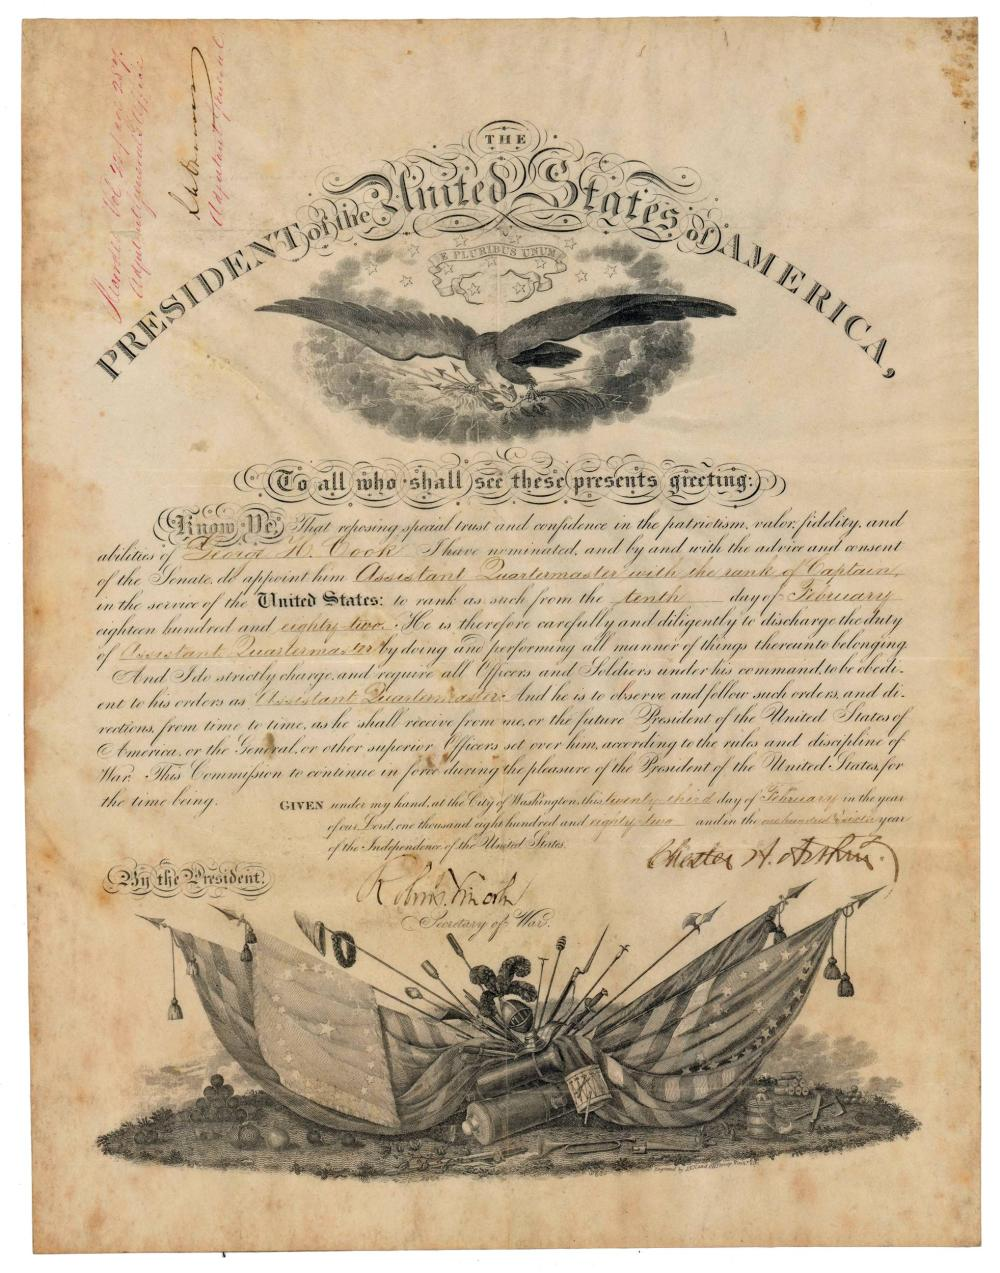 Chester A Arthur Signed Military Commission, Countersigned by Abraham Lincoln's Son, Robert